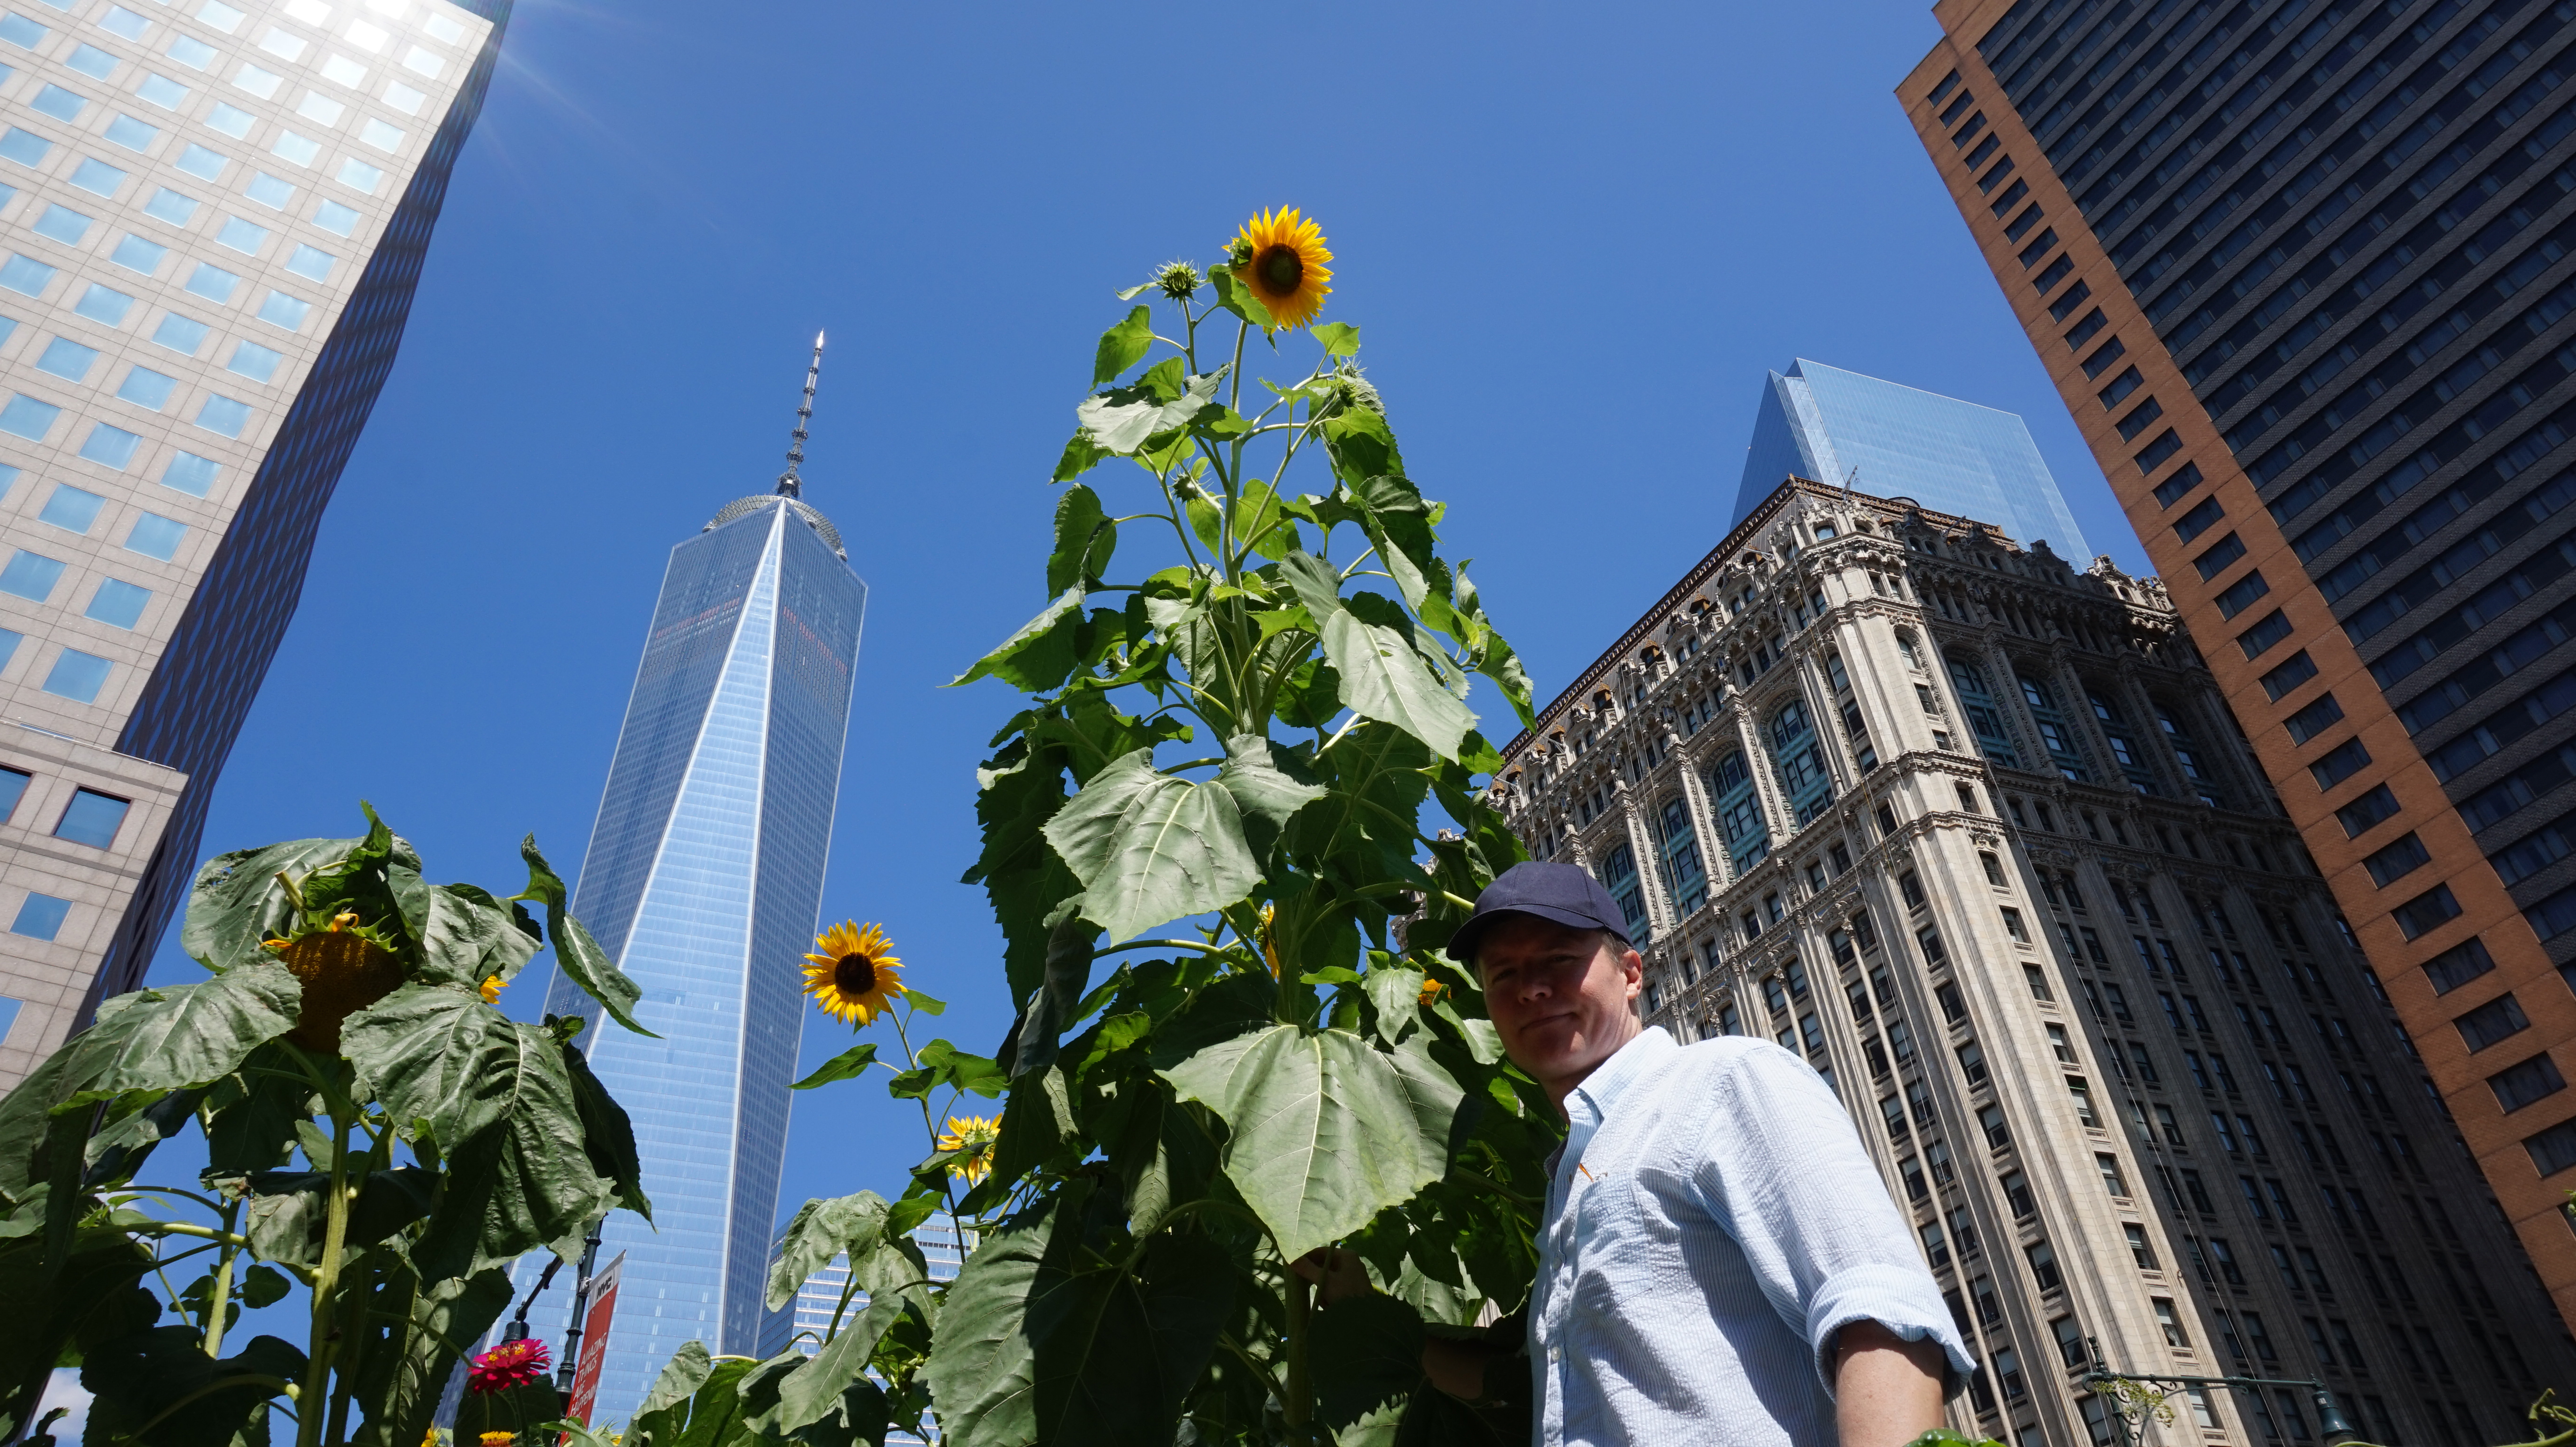 Me and sunflower looking up 8-25-2014